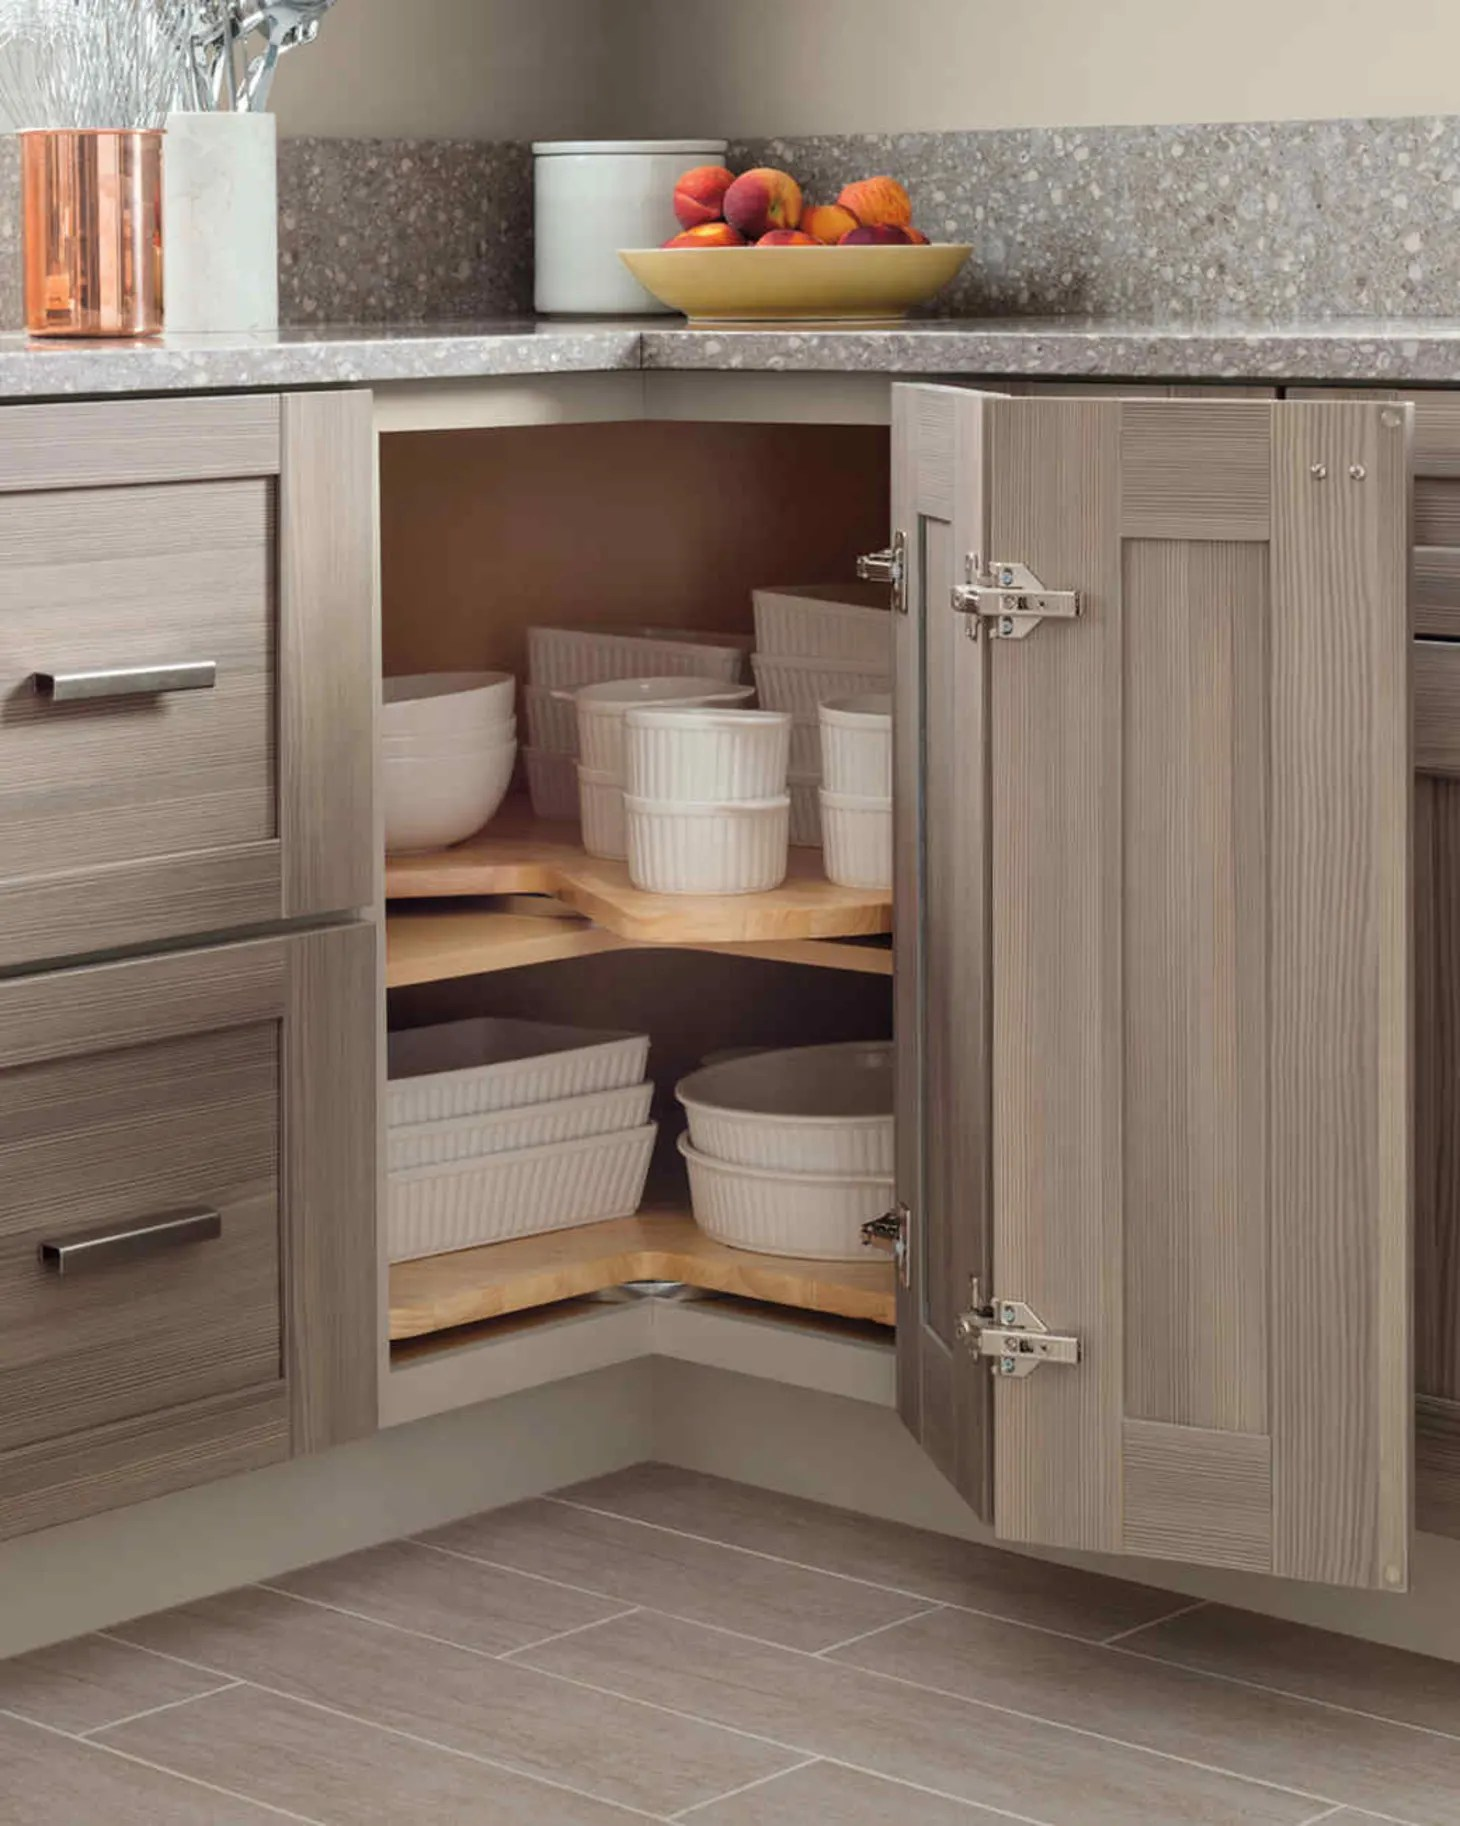 title | Kitchen Corner Cabinet